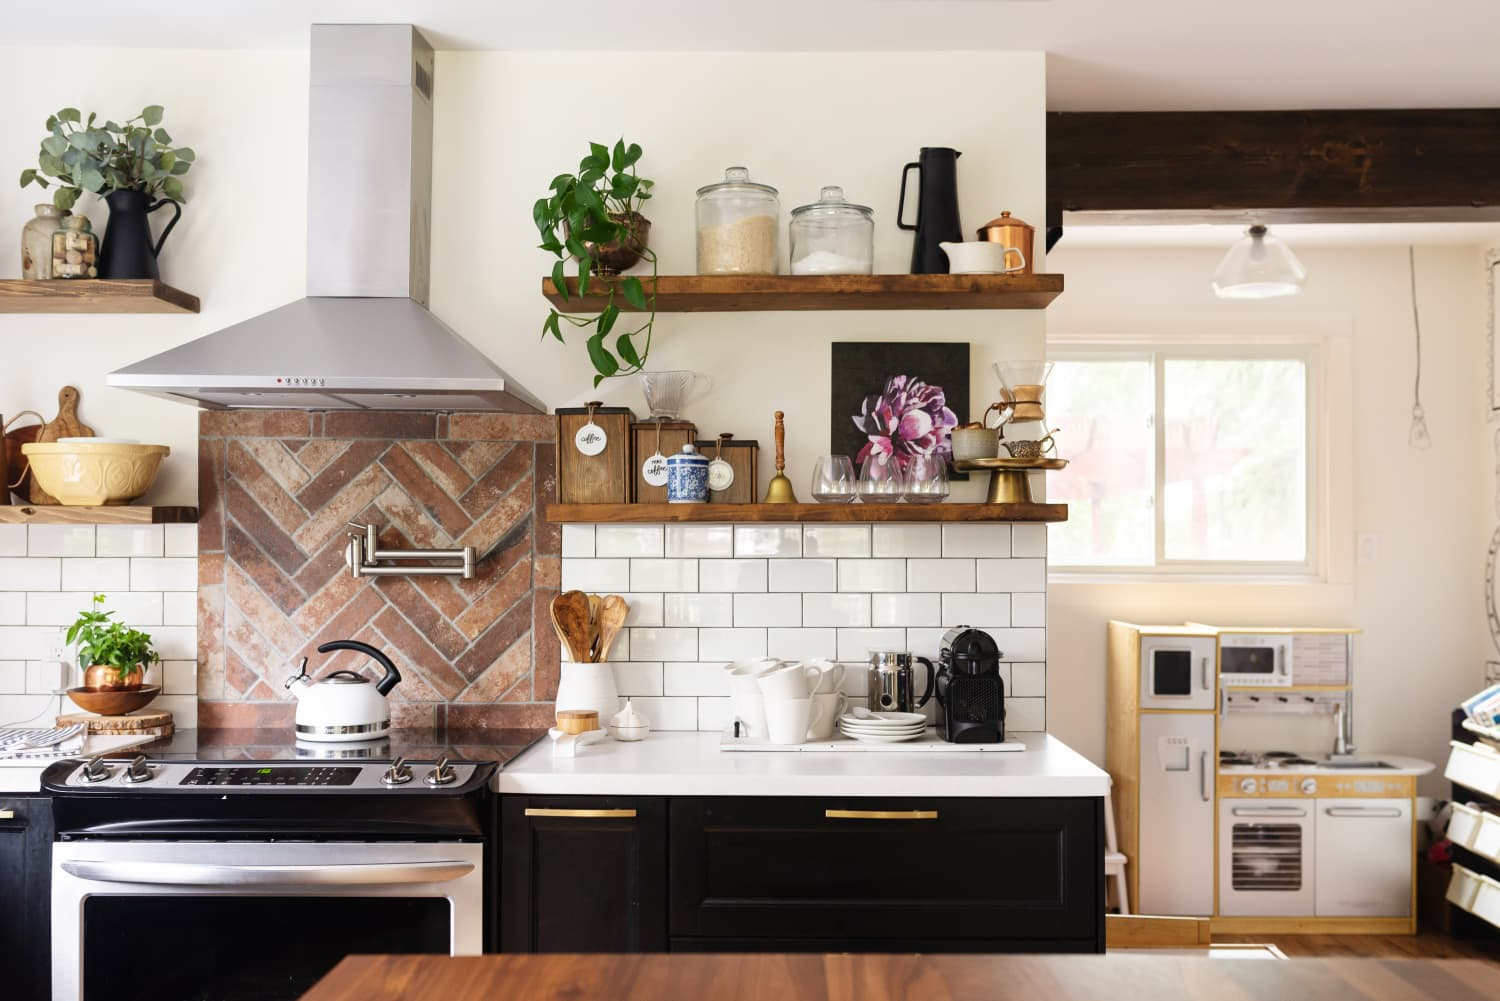 7 Organizers Meant for Other Rooms That Are Actually Great for the Kitchen — Organizing Tips from The Kitchn